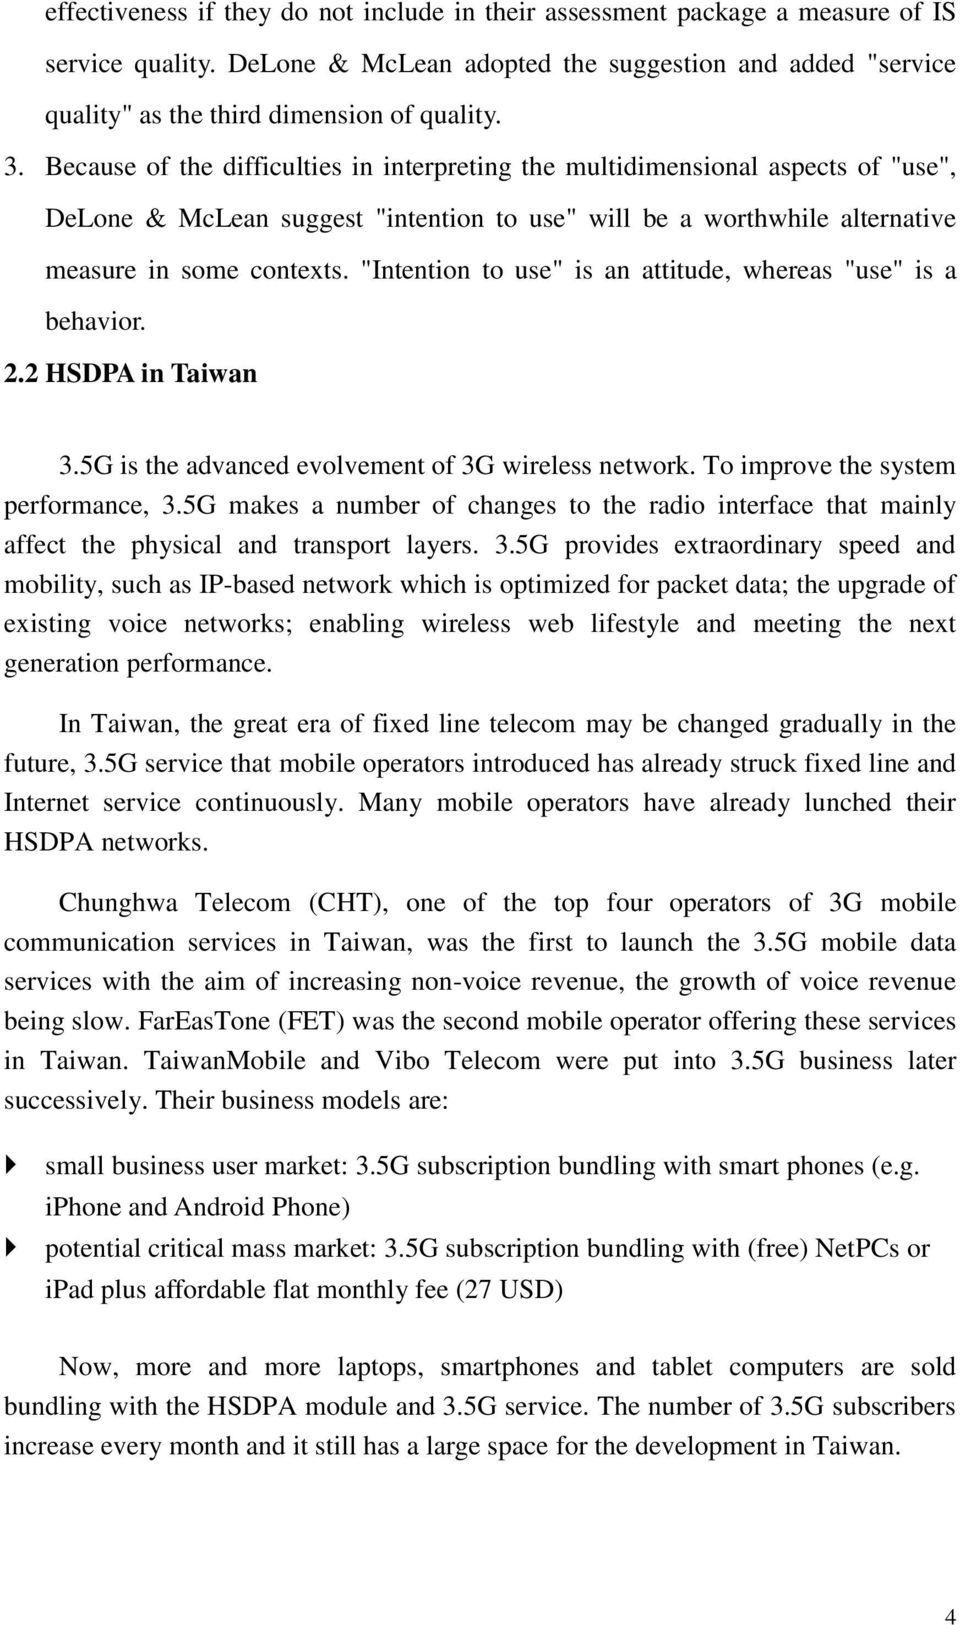 """Intention to use"" is an attitude, whereas ""use"" is a behavior. 2.2 HSDPA in Taiwan 3.5G is the advanced evolvement of 3G wireless network. To improve the system performance, 3."